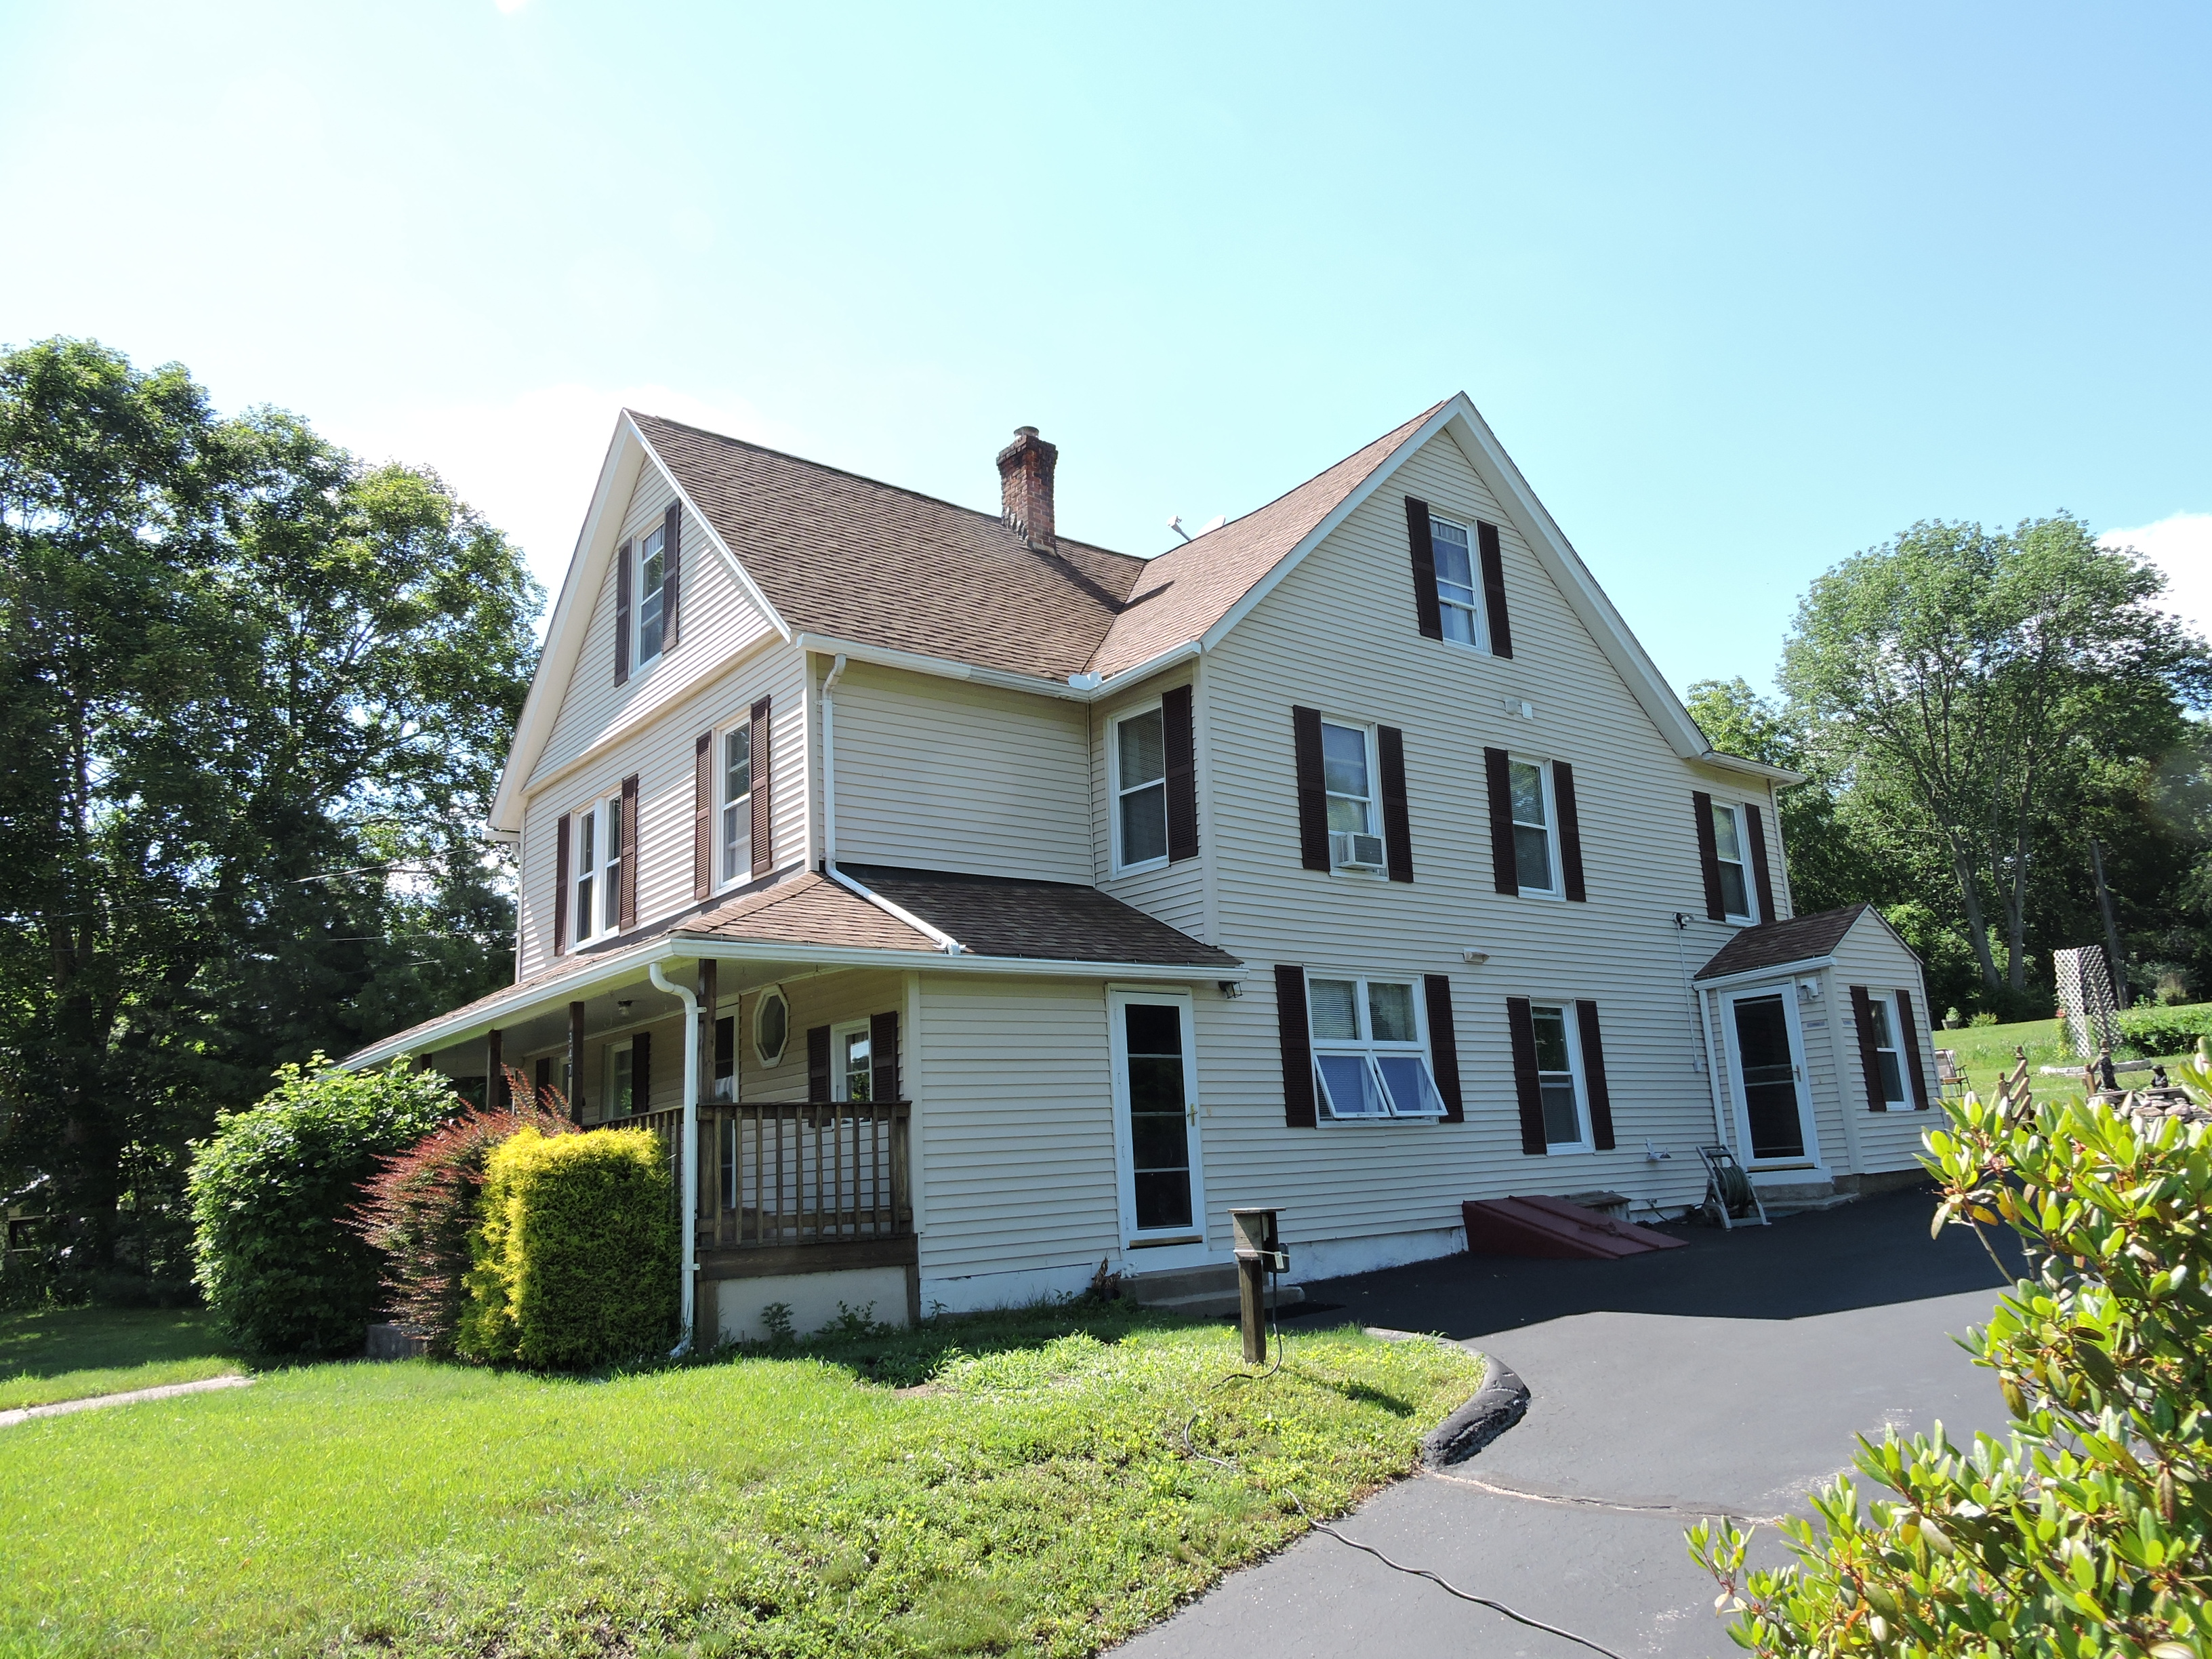 Single Family Home for Sale at Charming Bed and Breakfast 347 Salem Tunpike Bozrah, Connecticut, 06334 United States